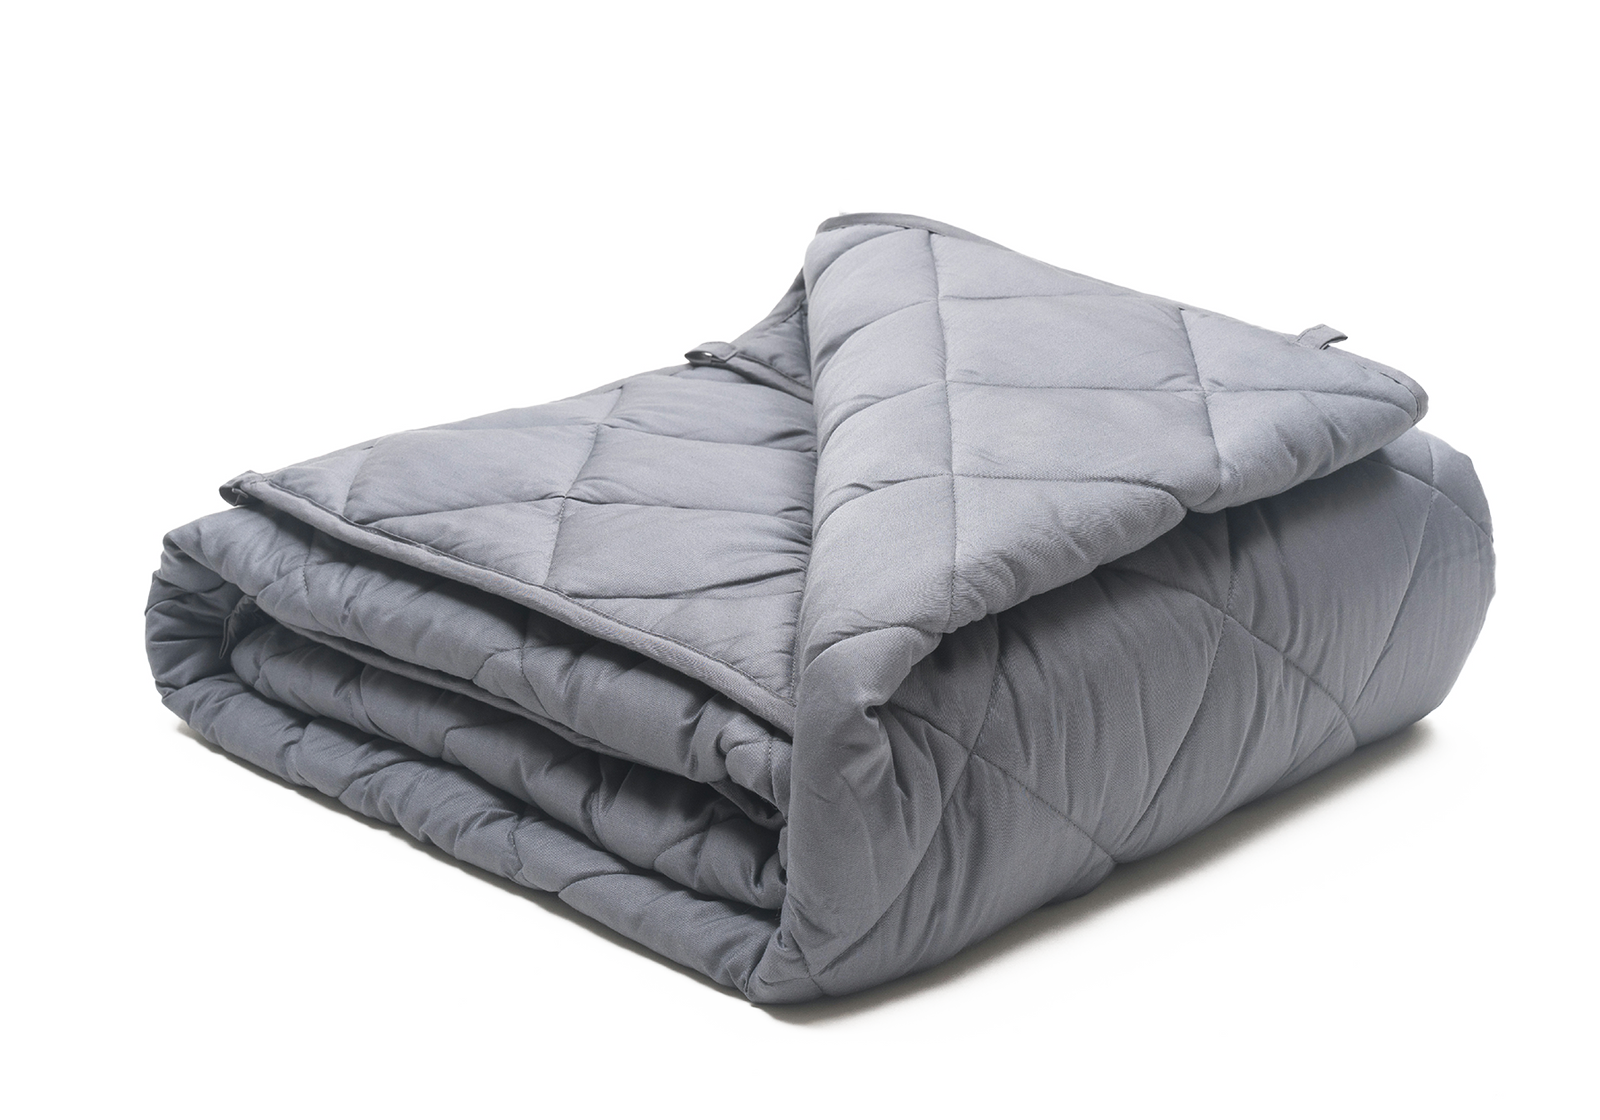 Manta Weighted Blanket